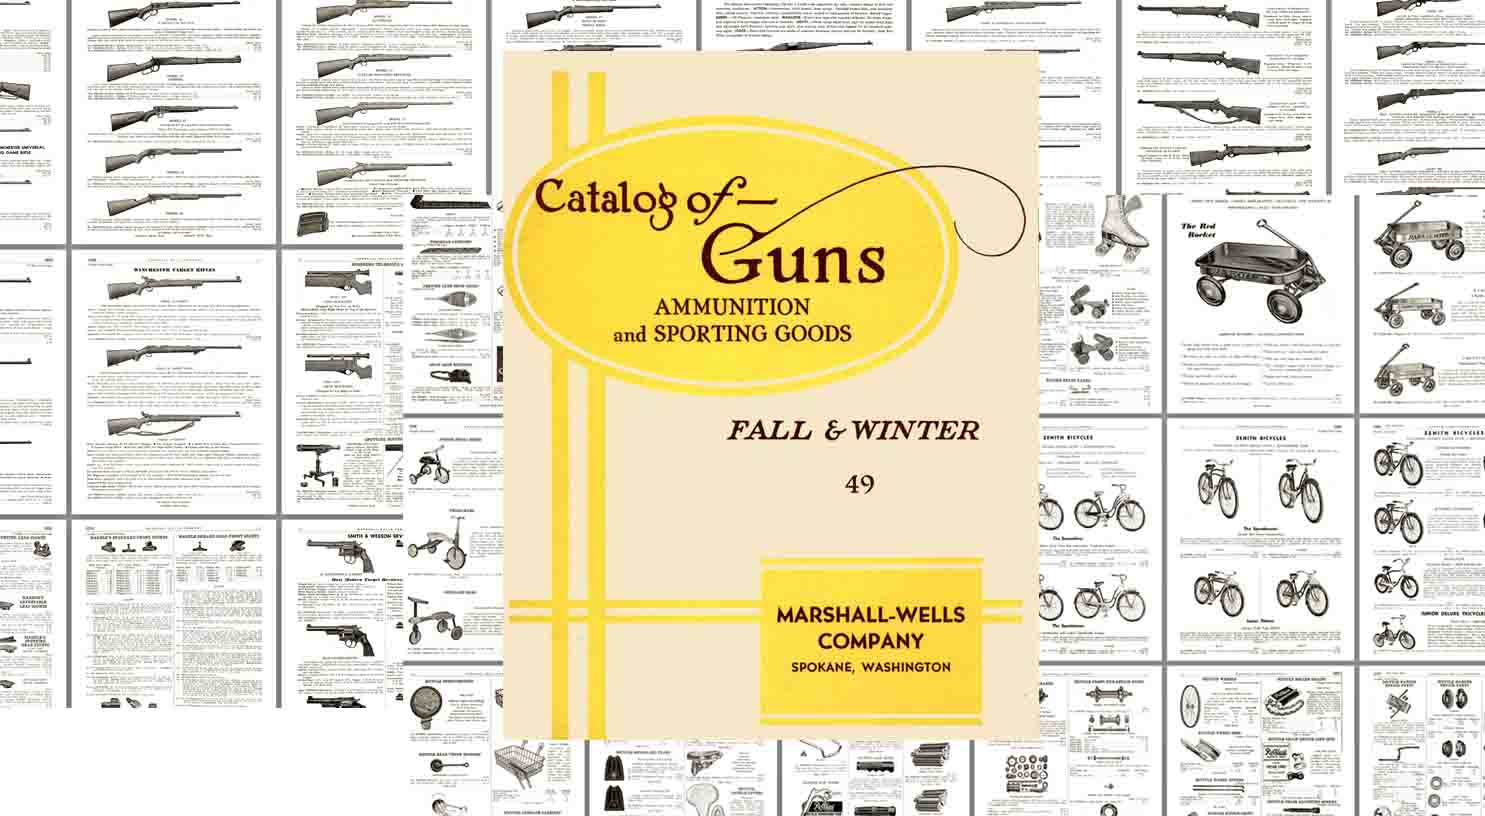 Marshall-Wells Co 1948 Catalog of Guns and Etc. - Spokane WA